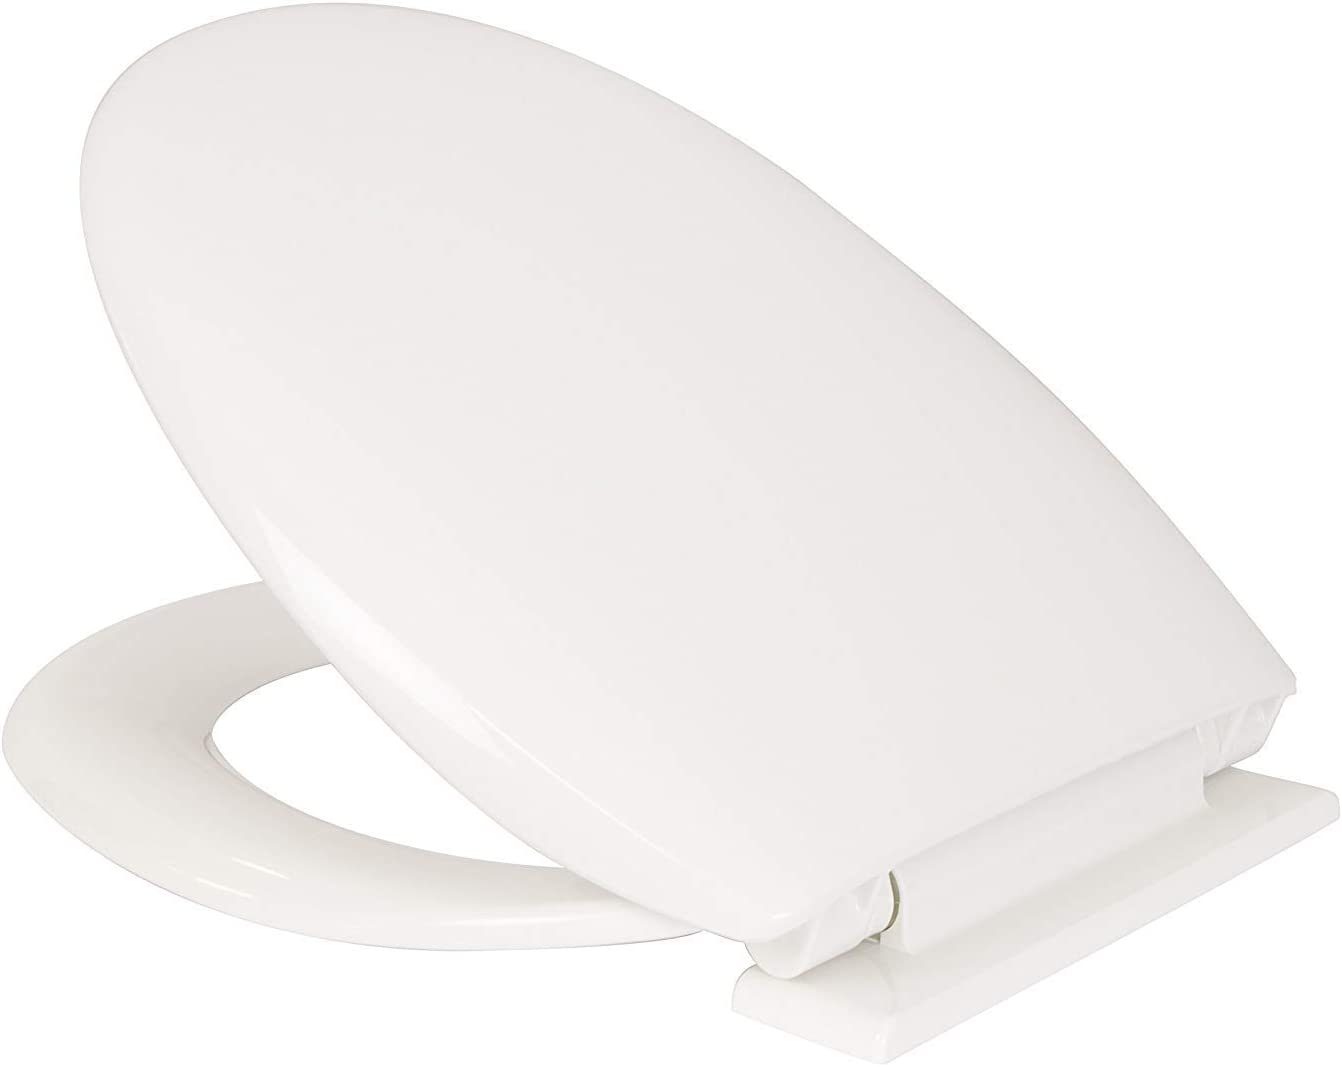 2X Anti-Bacterial Toilet Seat with Soft Close Hinges Made from Resilient Polypropylene, White